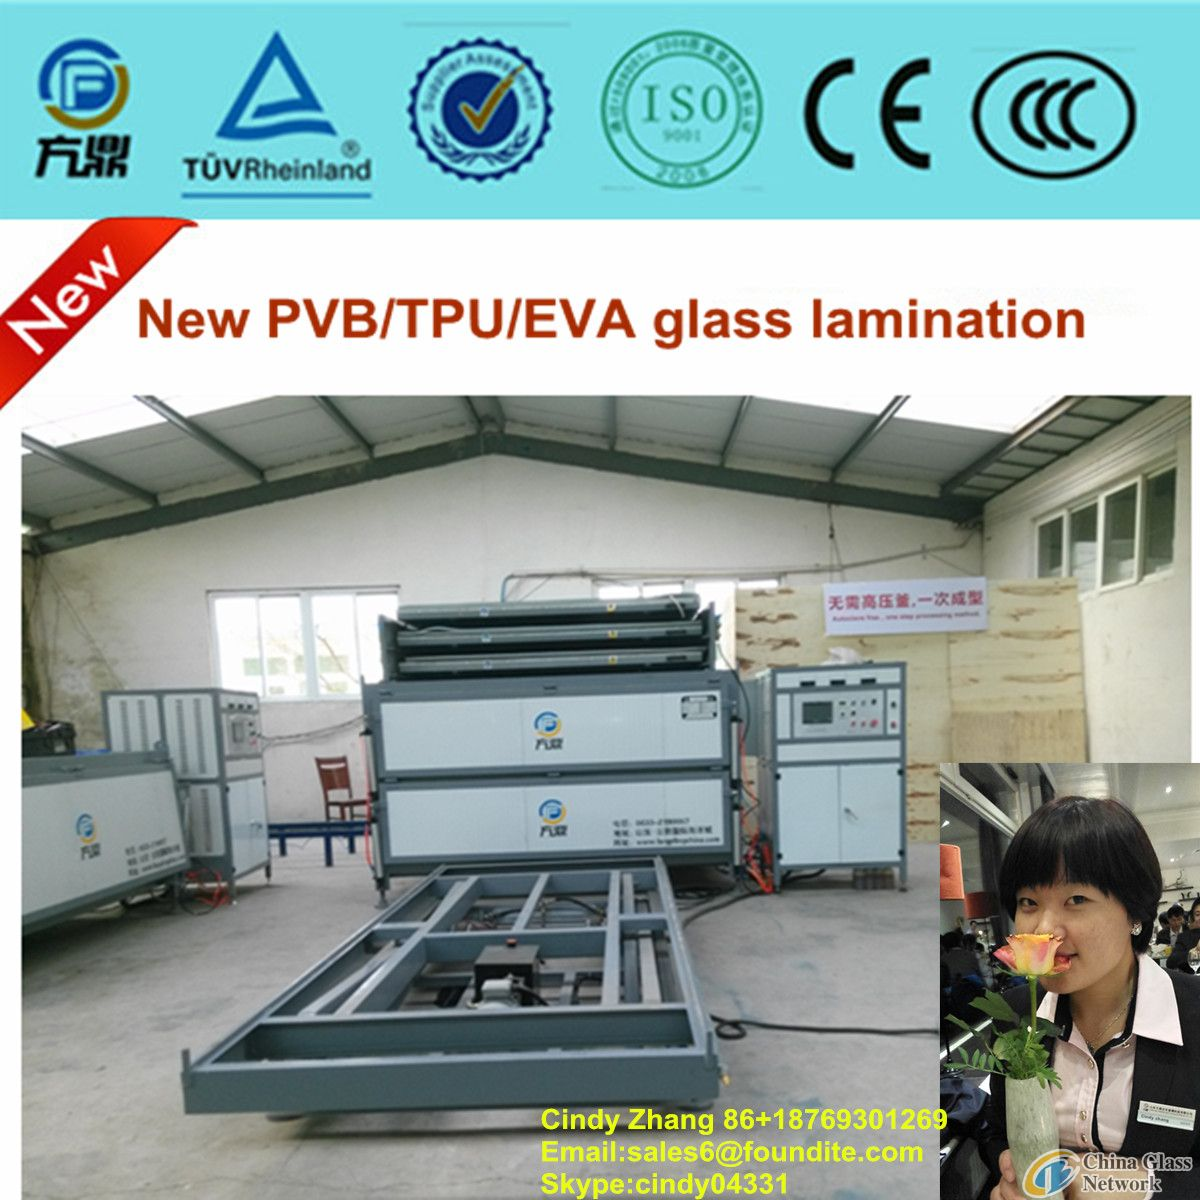 Energy saving glass laminating machine with CE certification